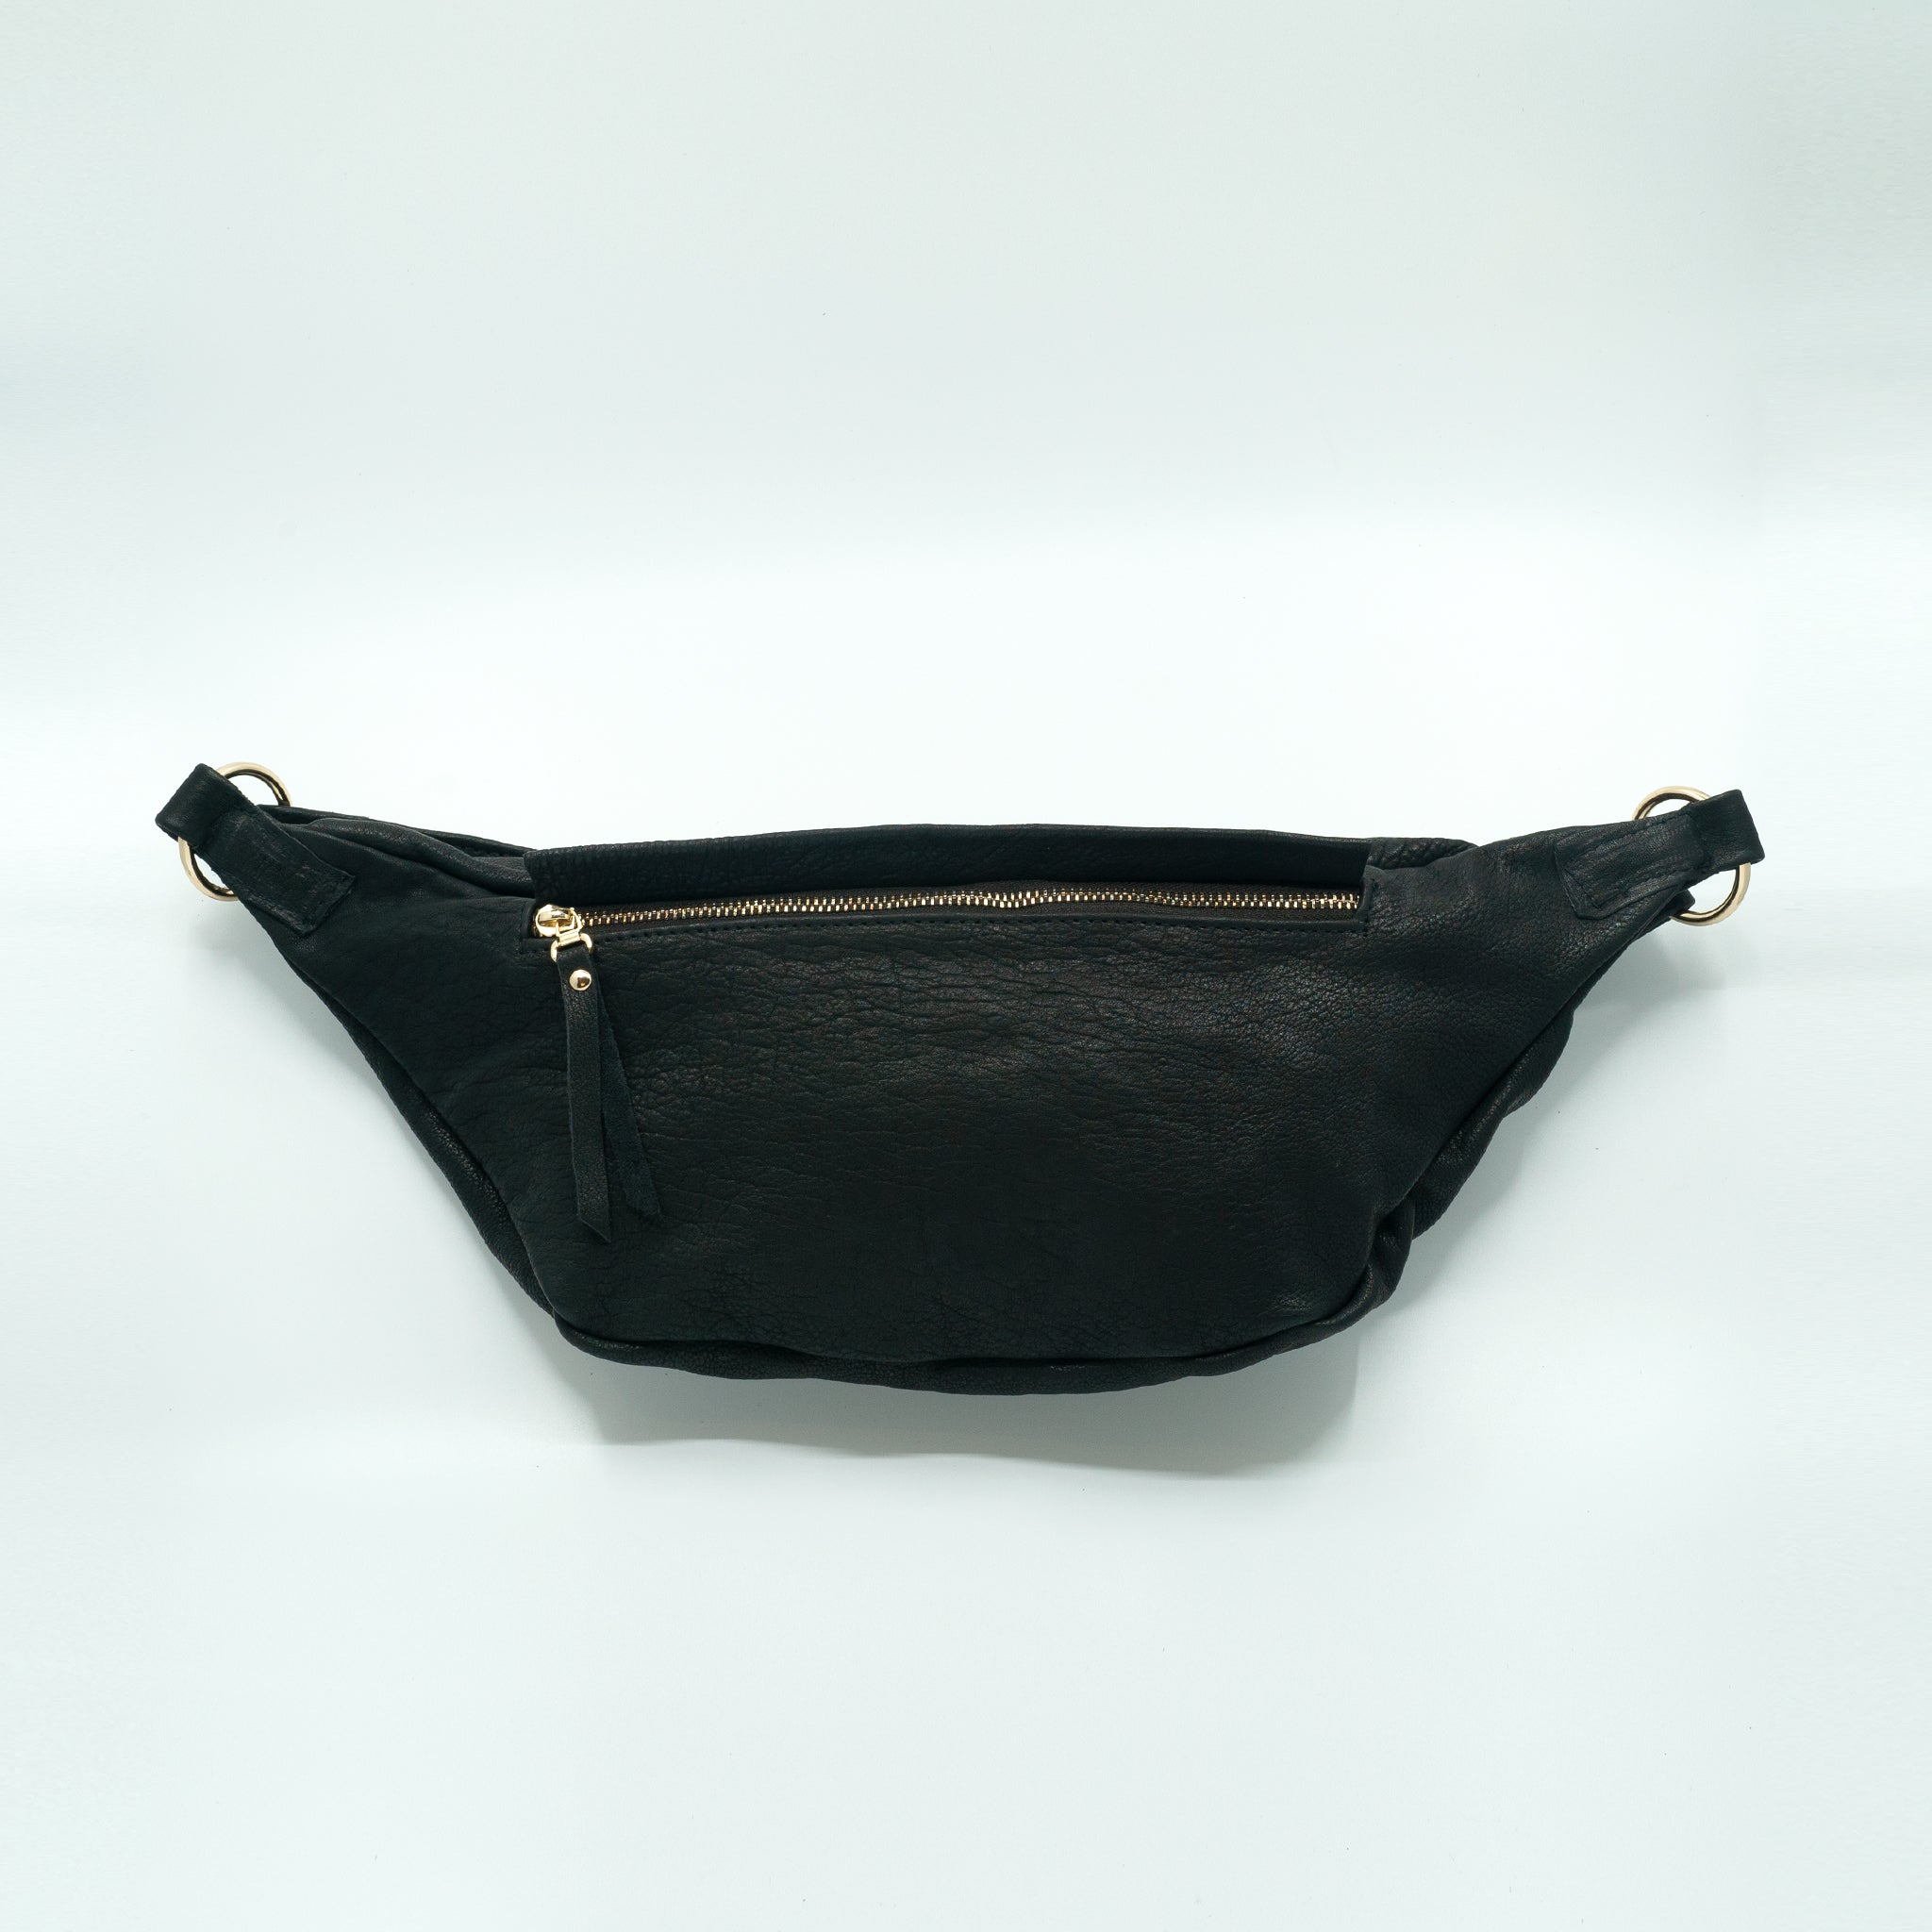 The Everywhere Bag #4 — Grainy Black Leather with Gold Hardware